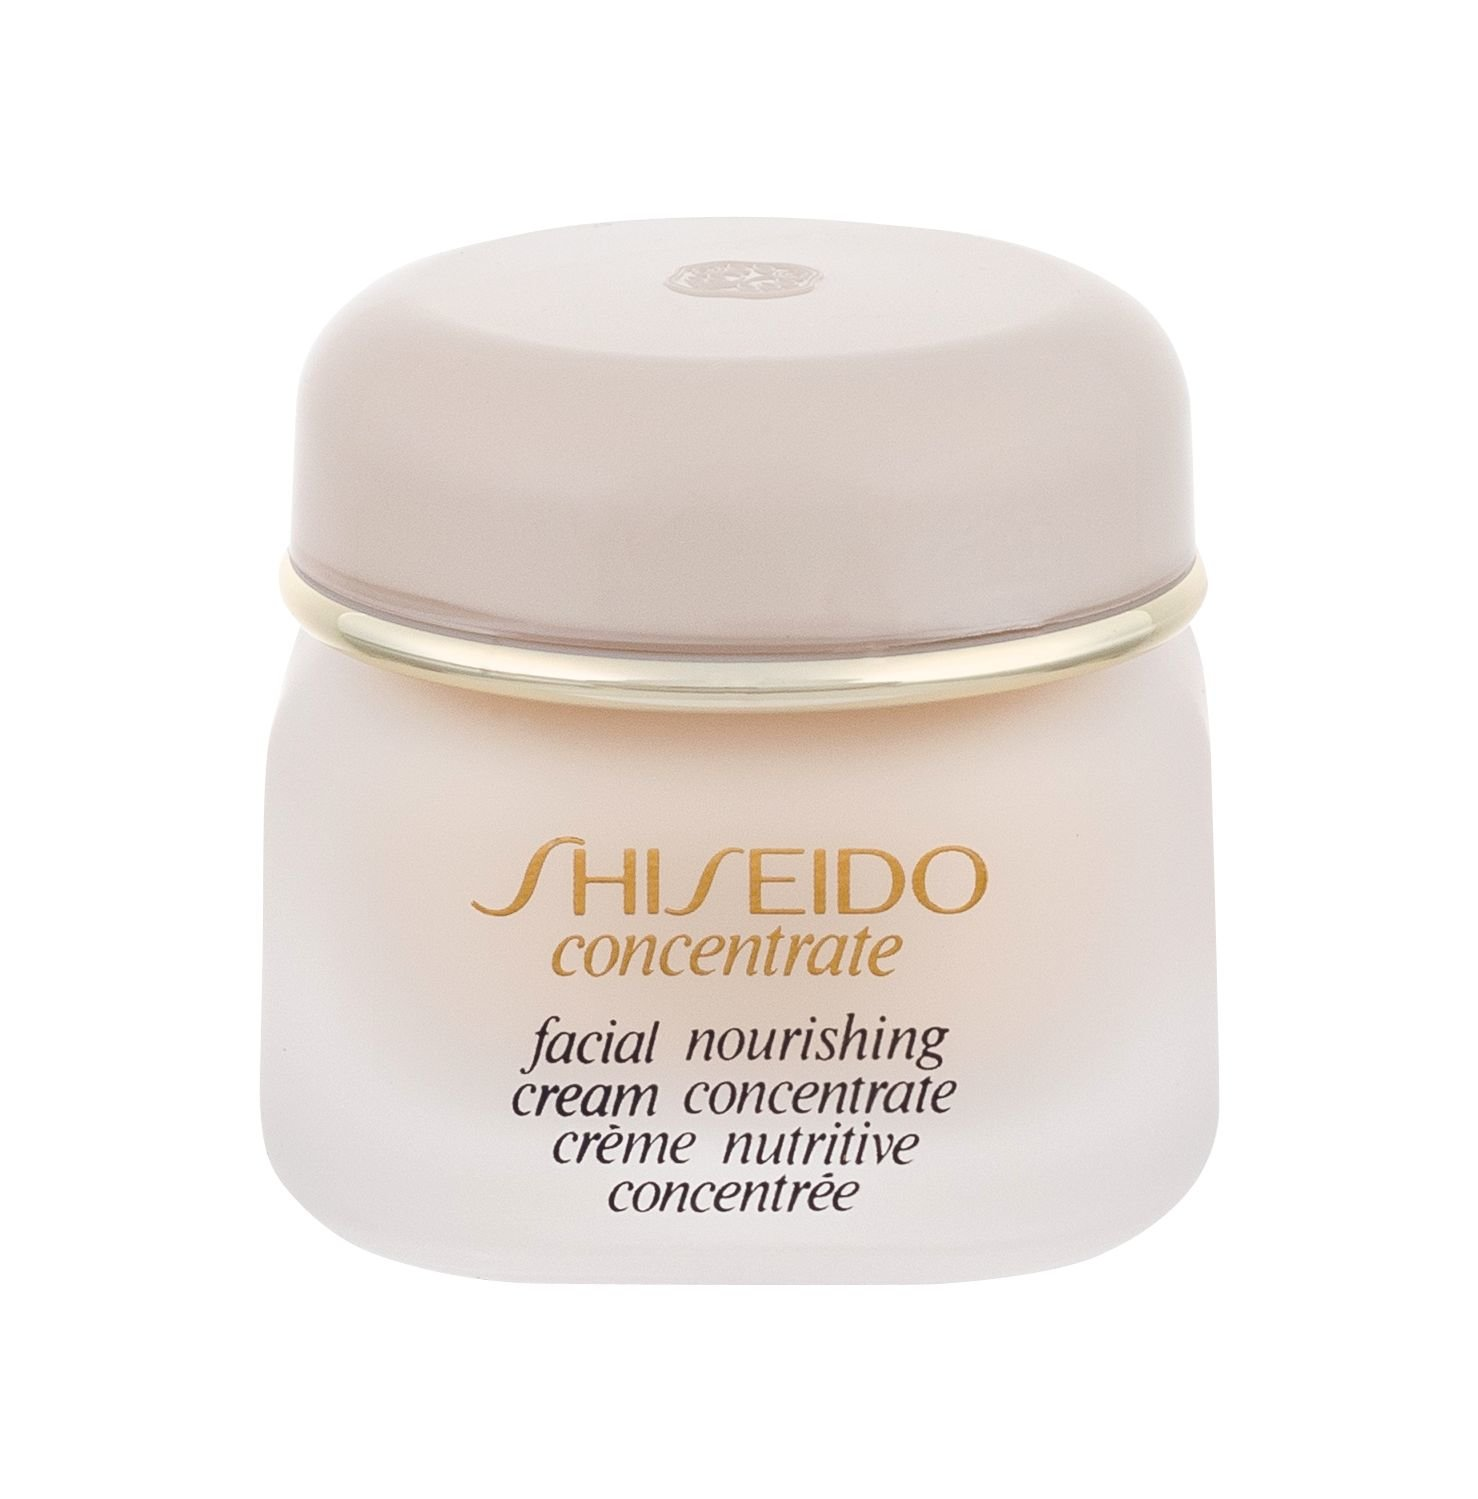 Shiseido Concentrate Cosmetic 30ml